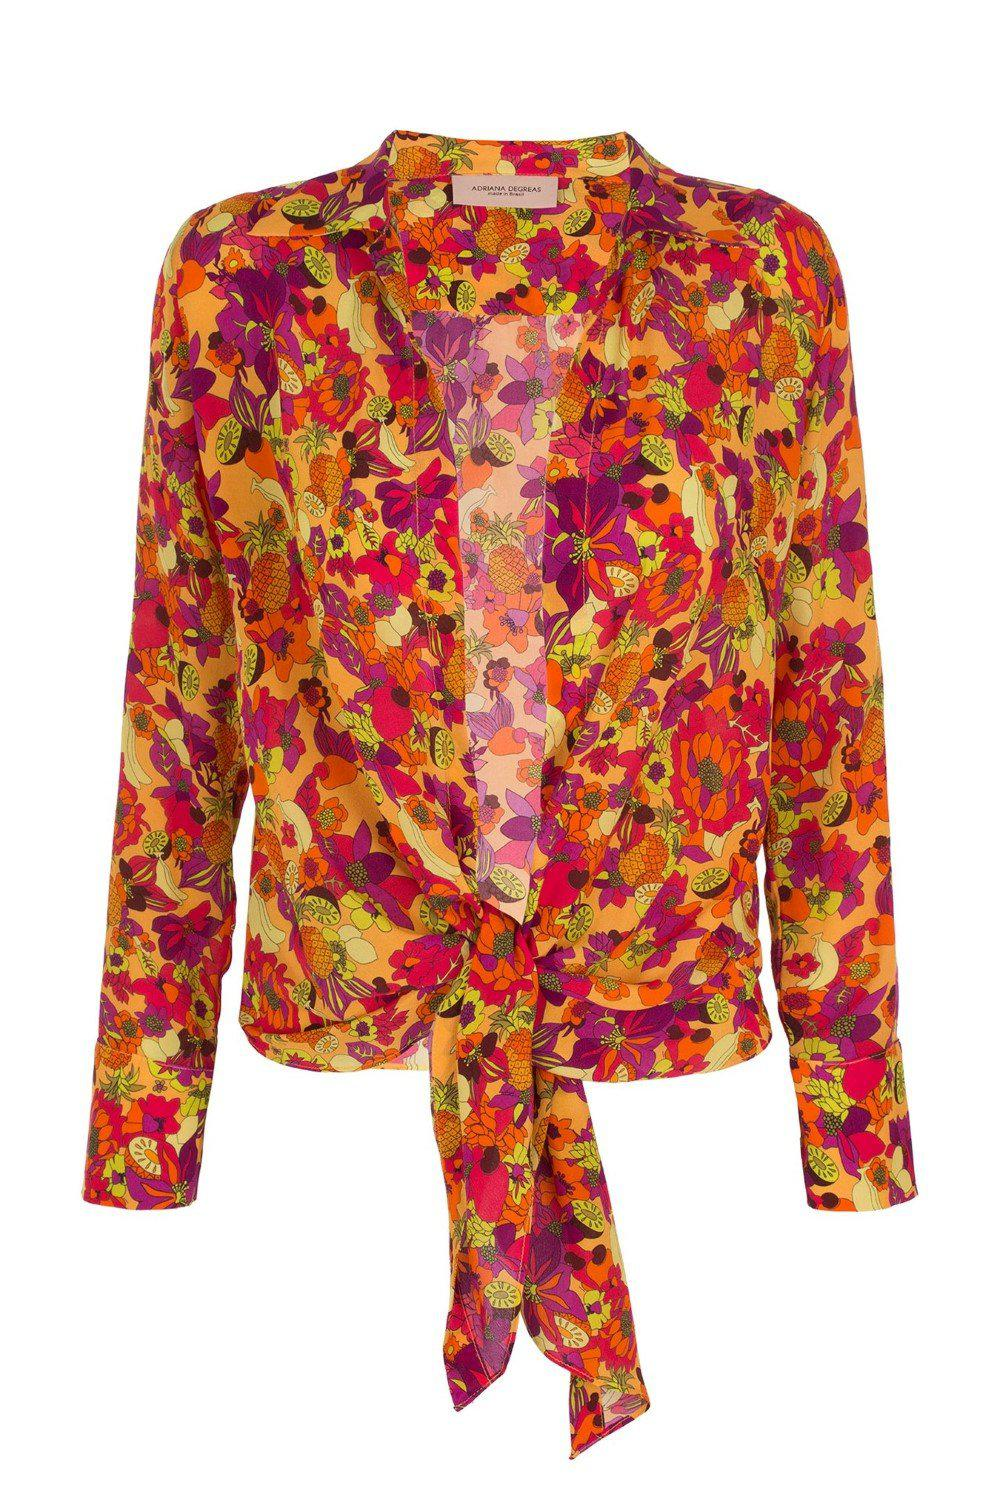 Fruits Print Shirt with Knot Detail